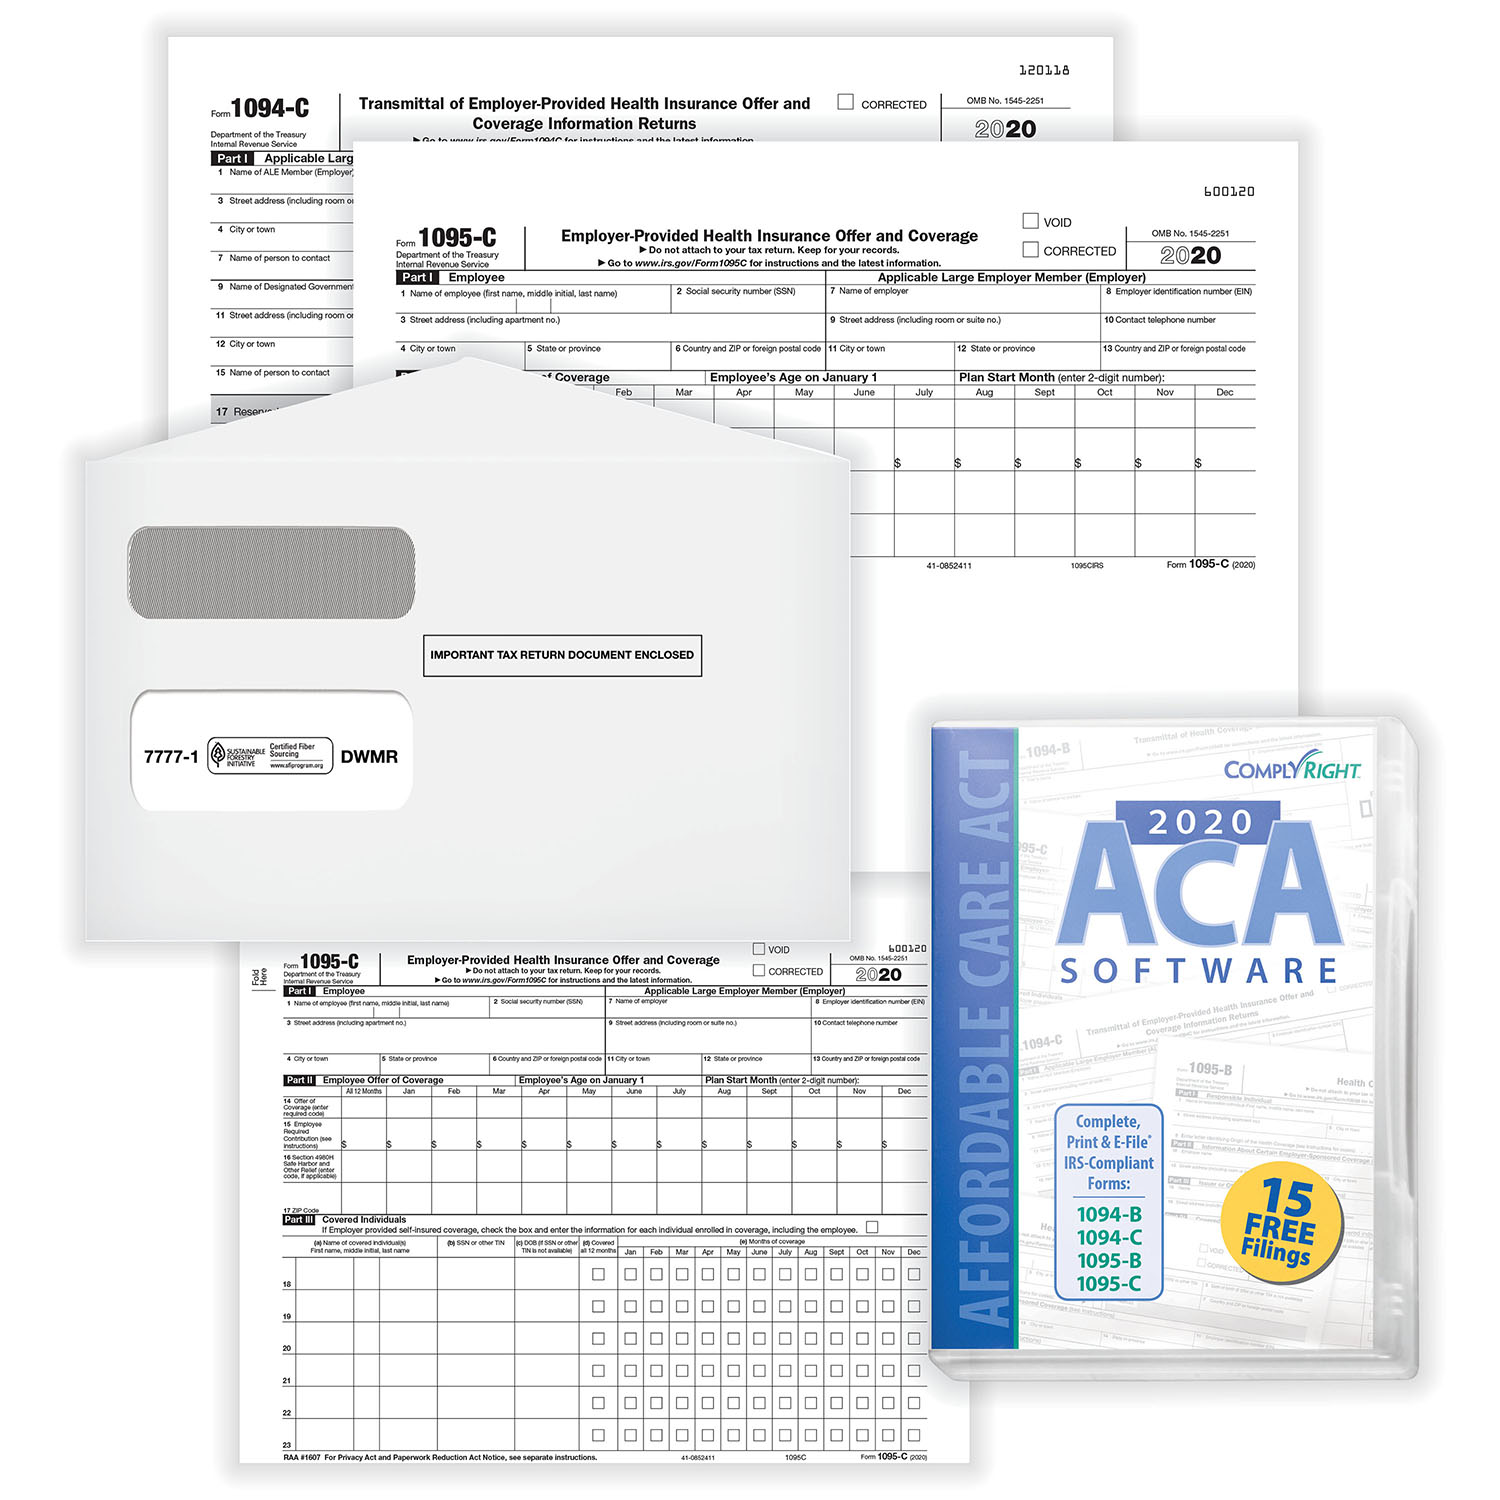 affordable care act forms and software 1095 c kit